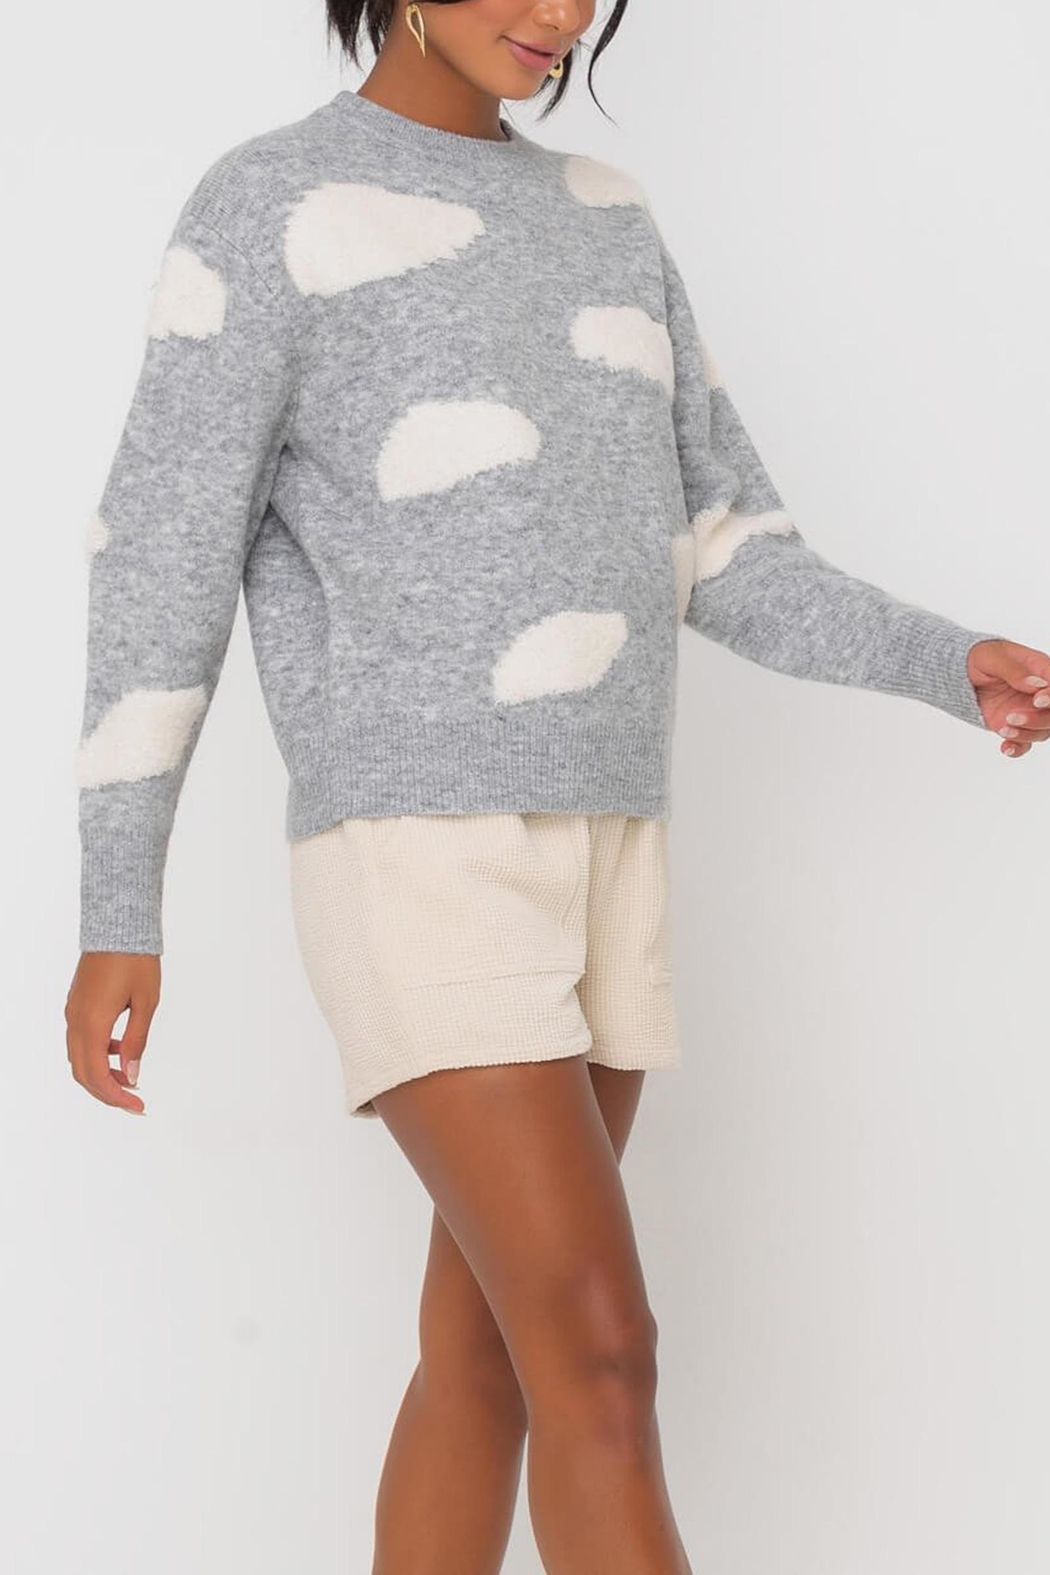 Lush Clothing  Cloud Print Sweater - Front Full Image